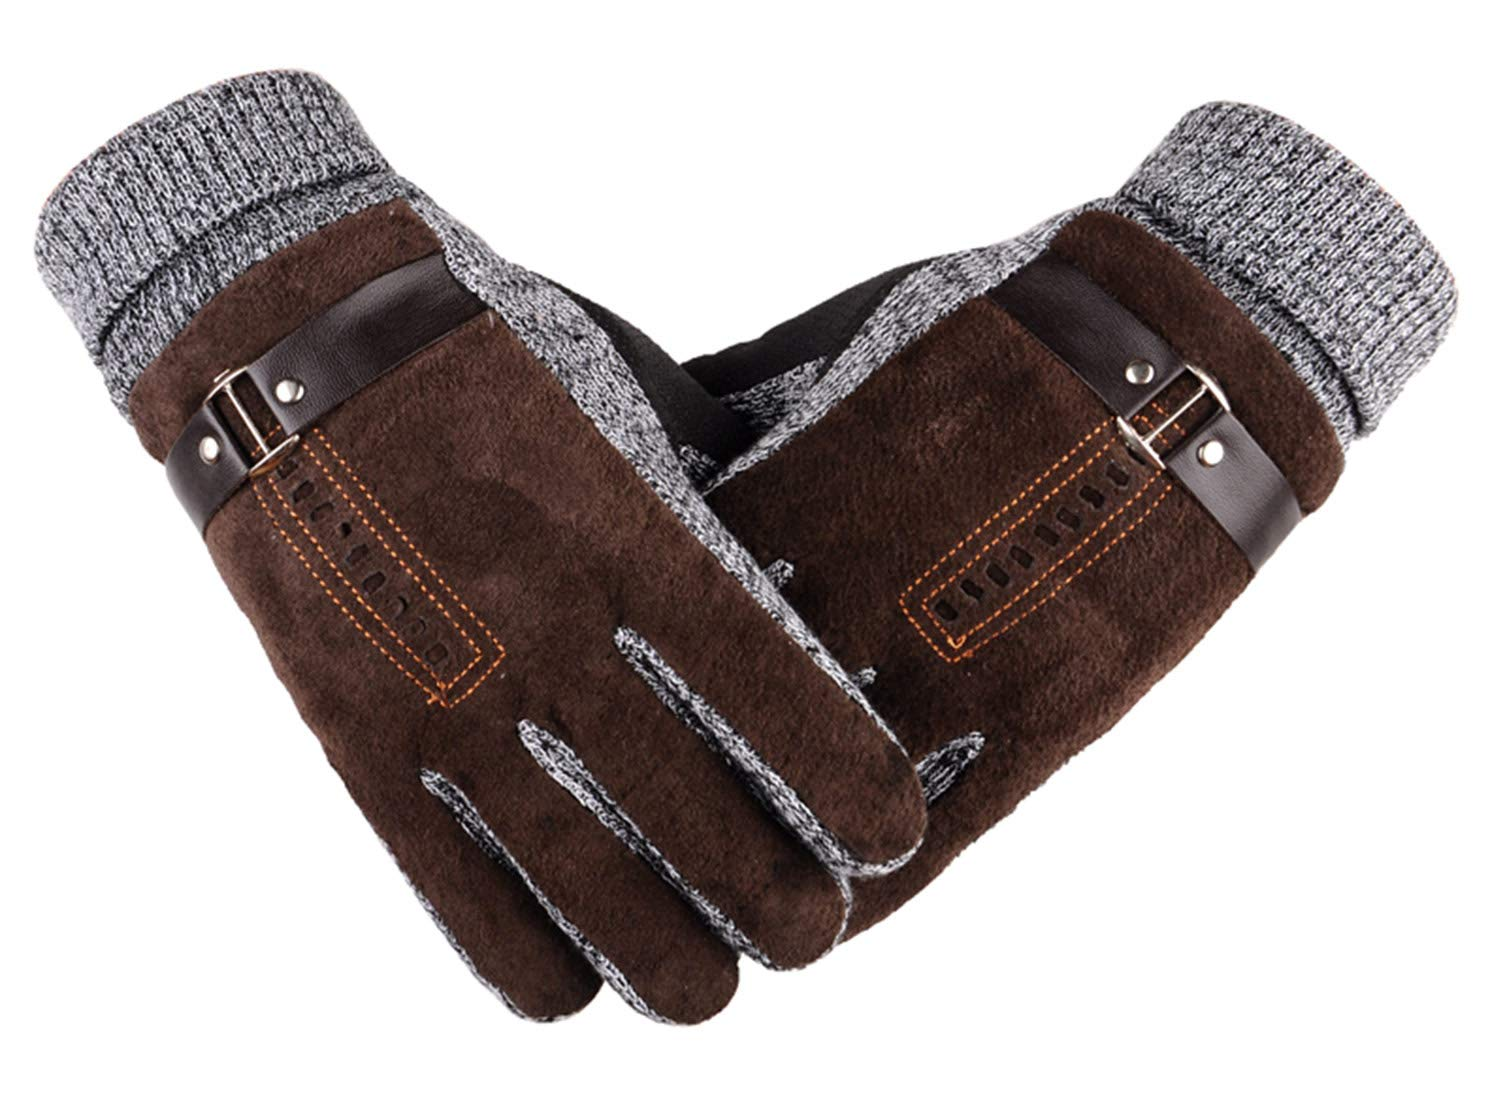 AIEOE Men Gloves Thick Touch Screen Gloves Lightweight Breathable Wind Resistant Winter Gloves for Drving Biking